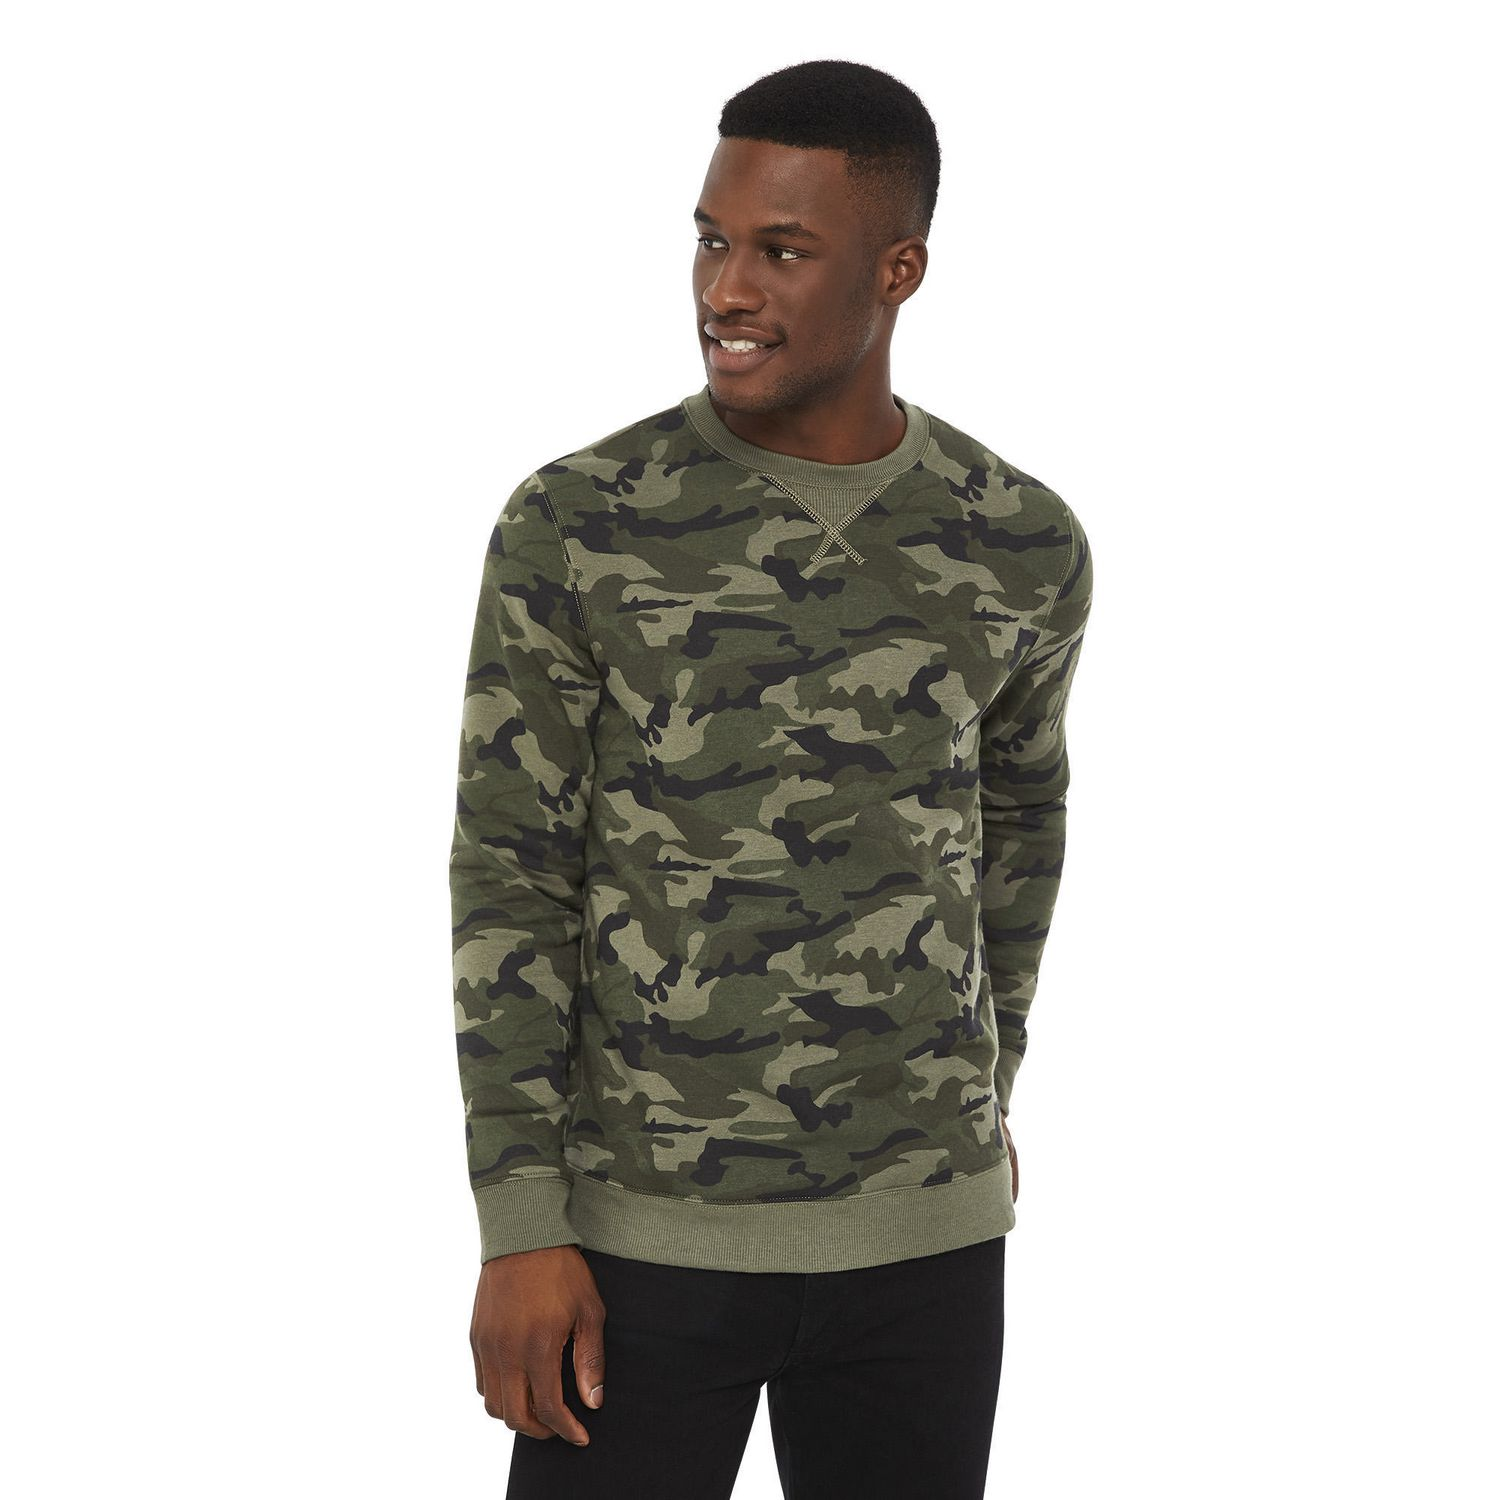 b20427238ade George Men's Wow Camouflage Crew Neck - image 1 of 6 zoomed image